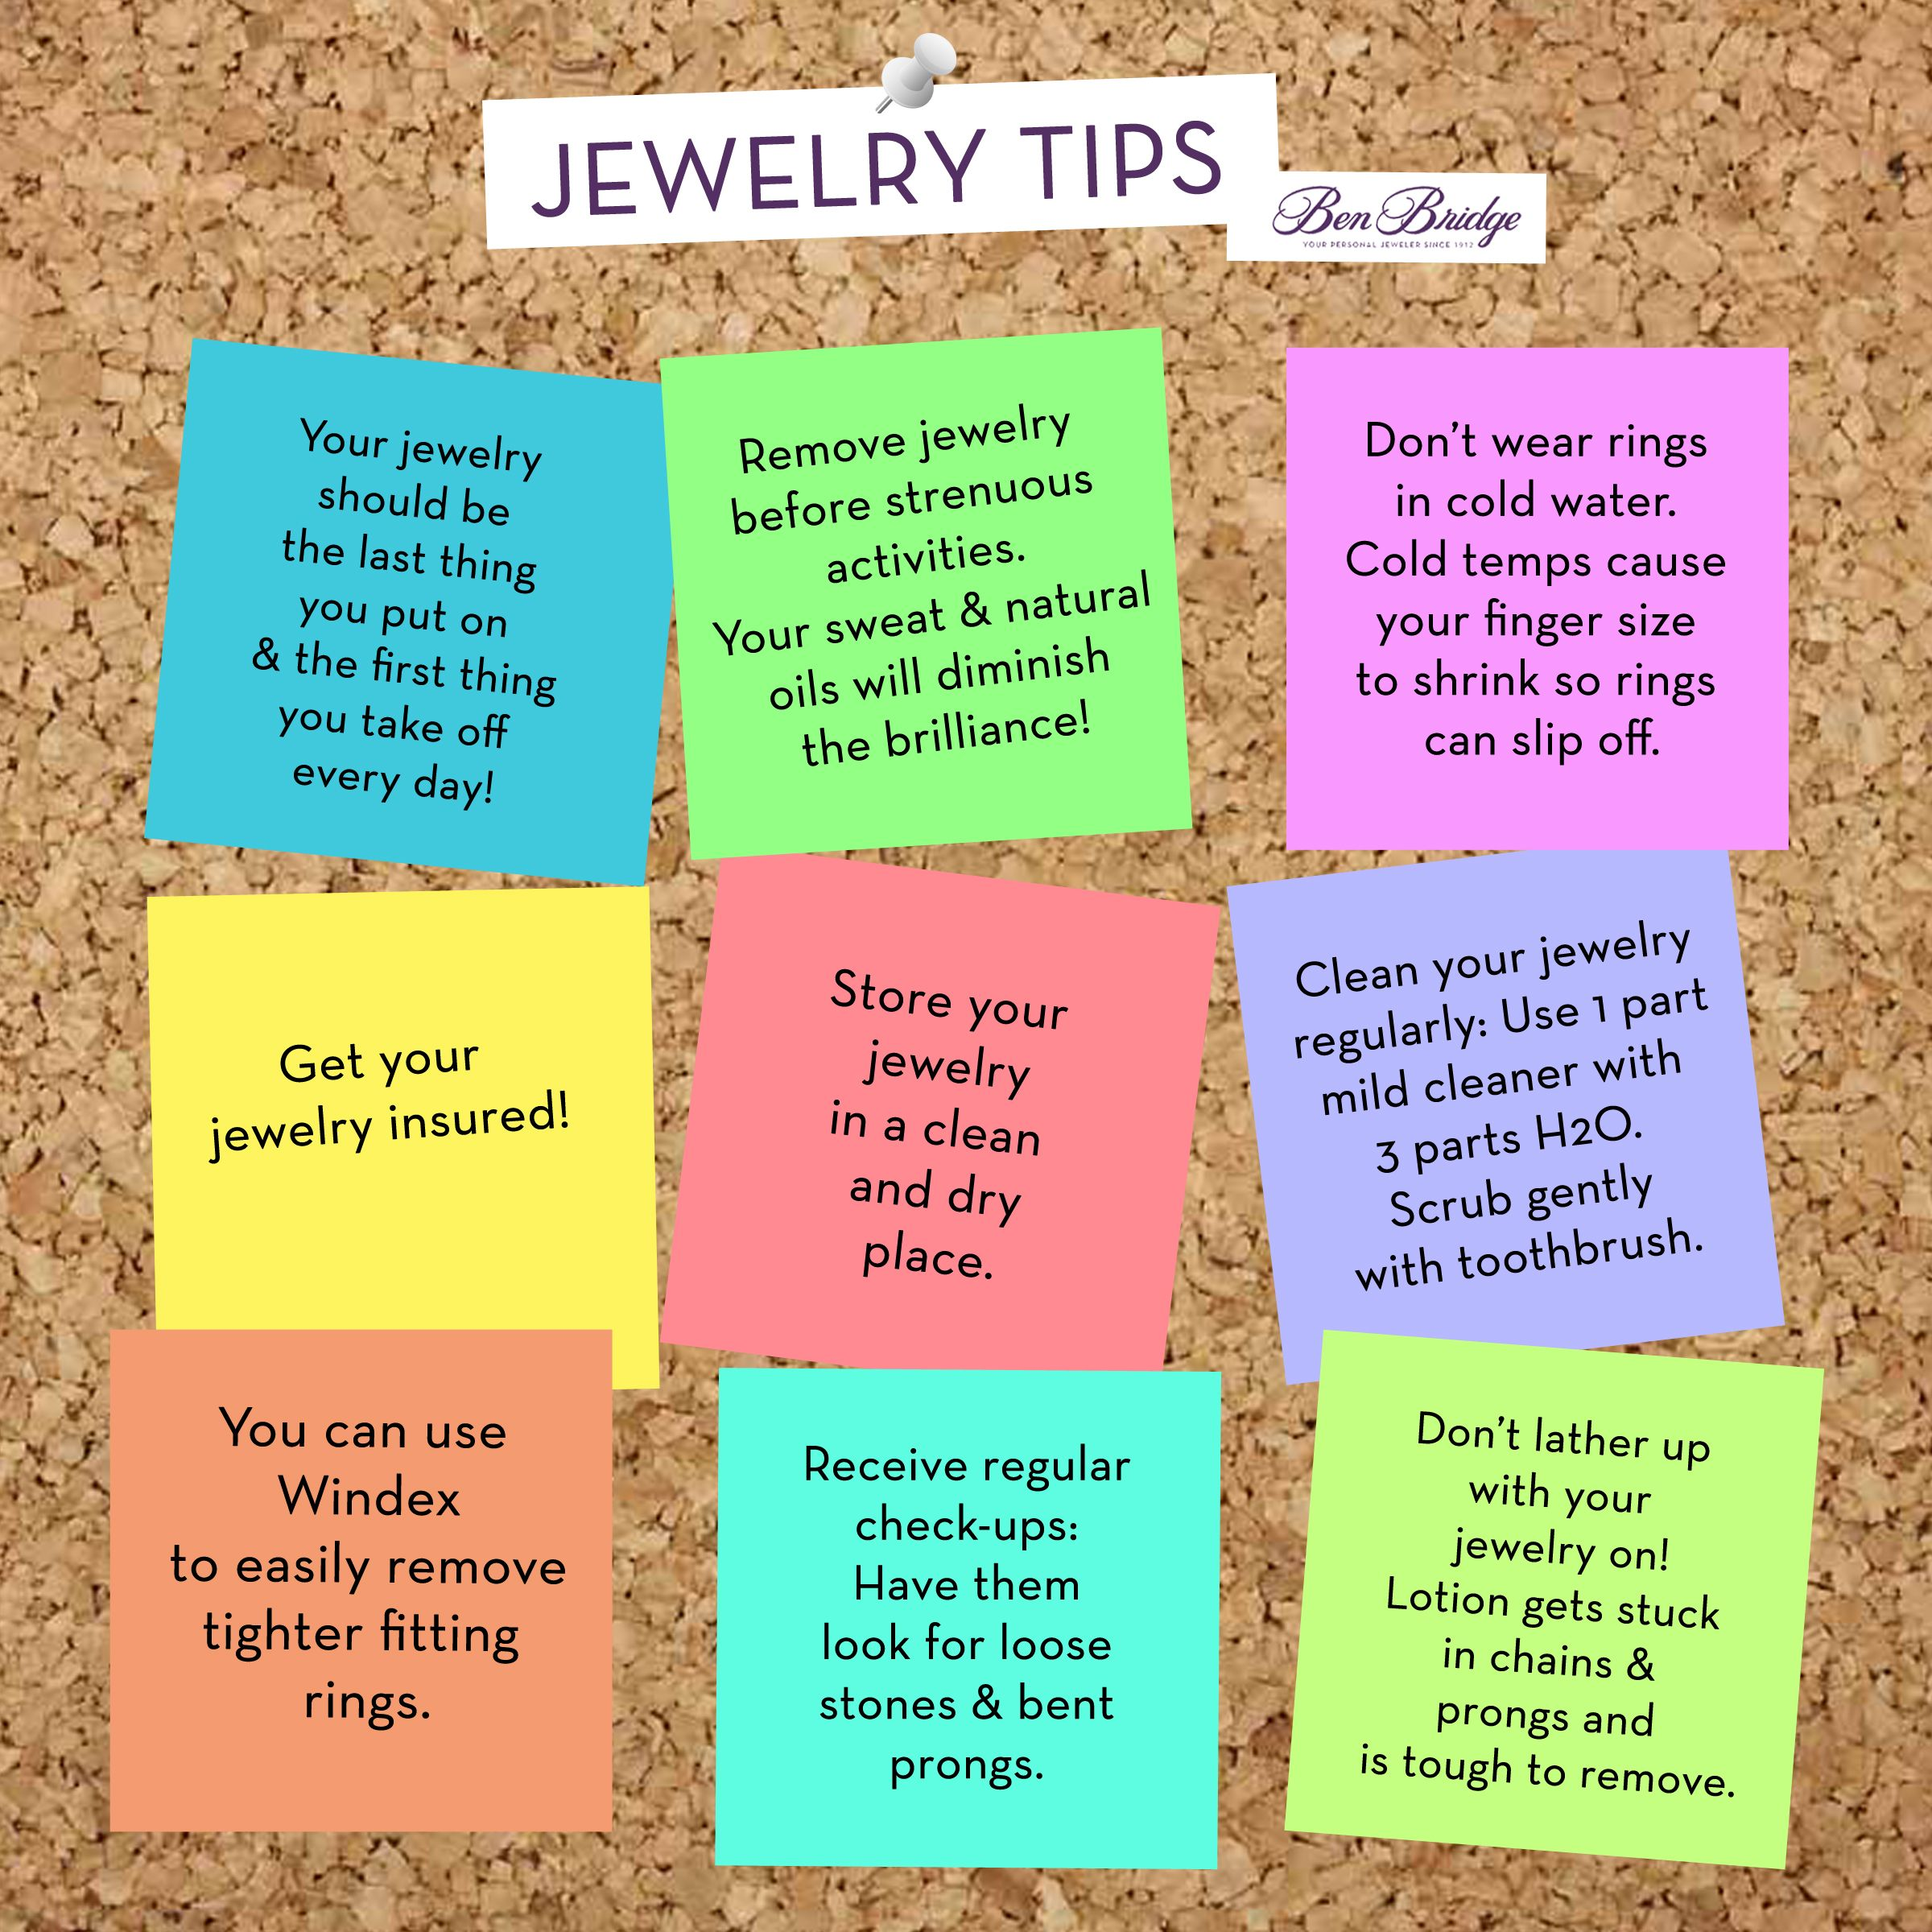 9 fun jewelry tips for jewelry owners have a tip to add